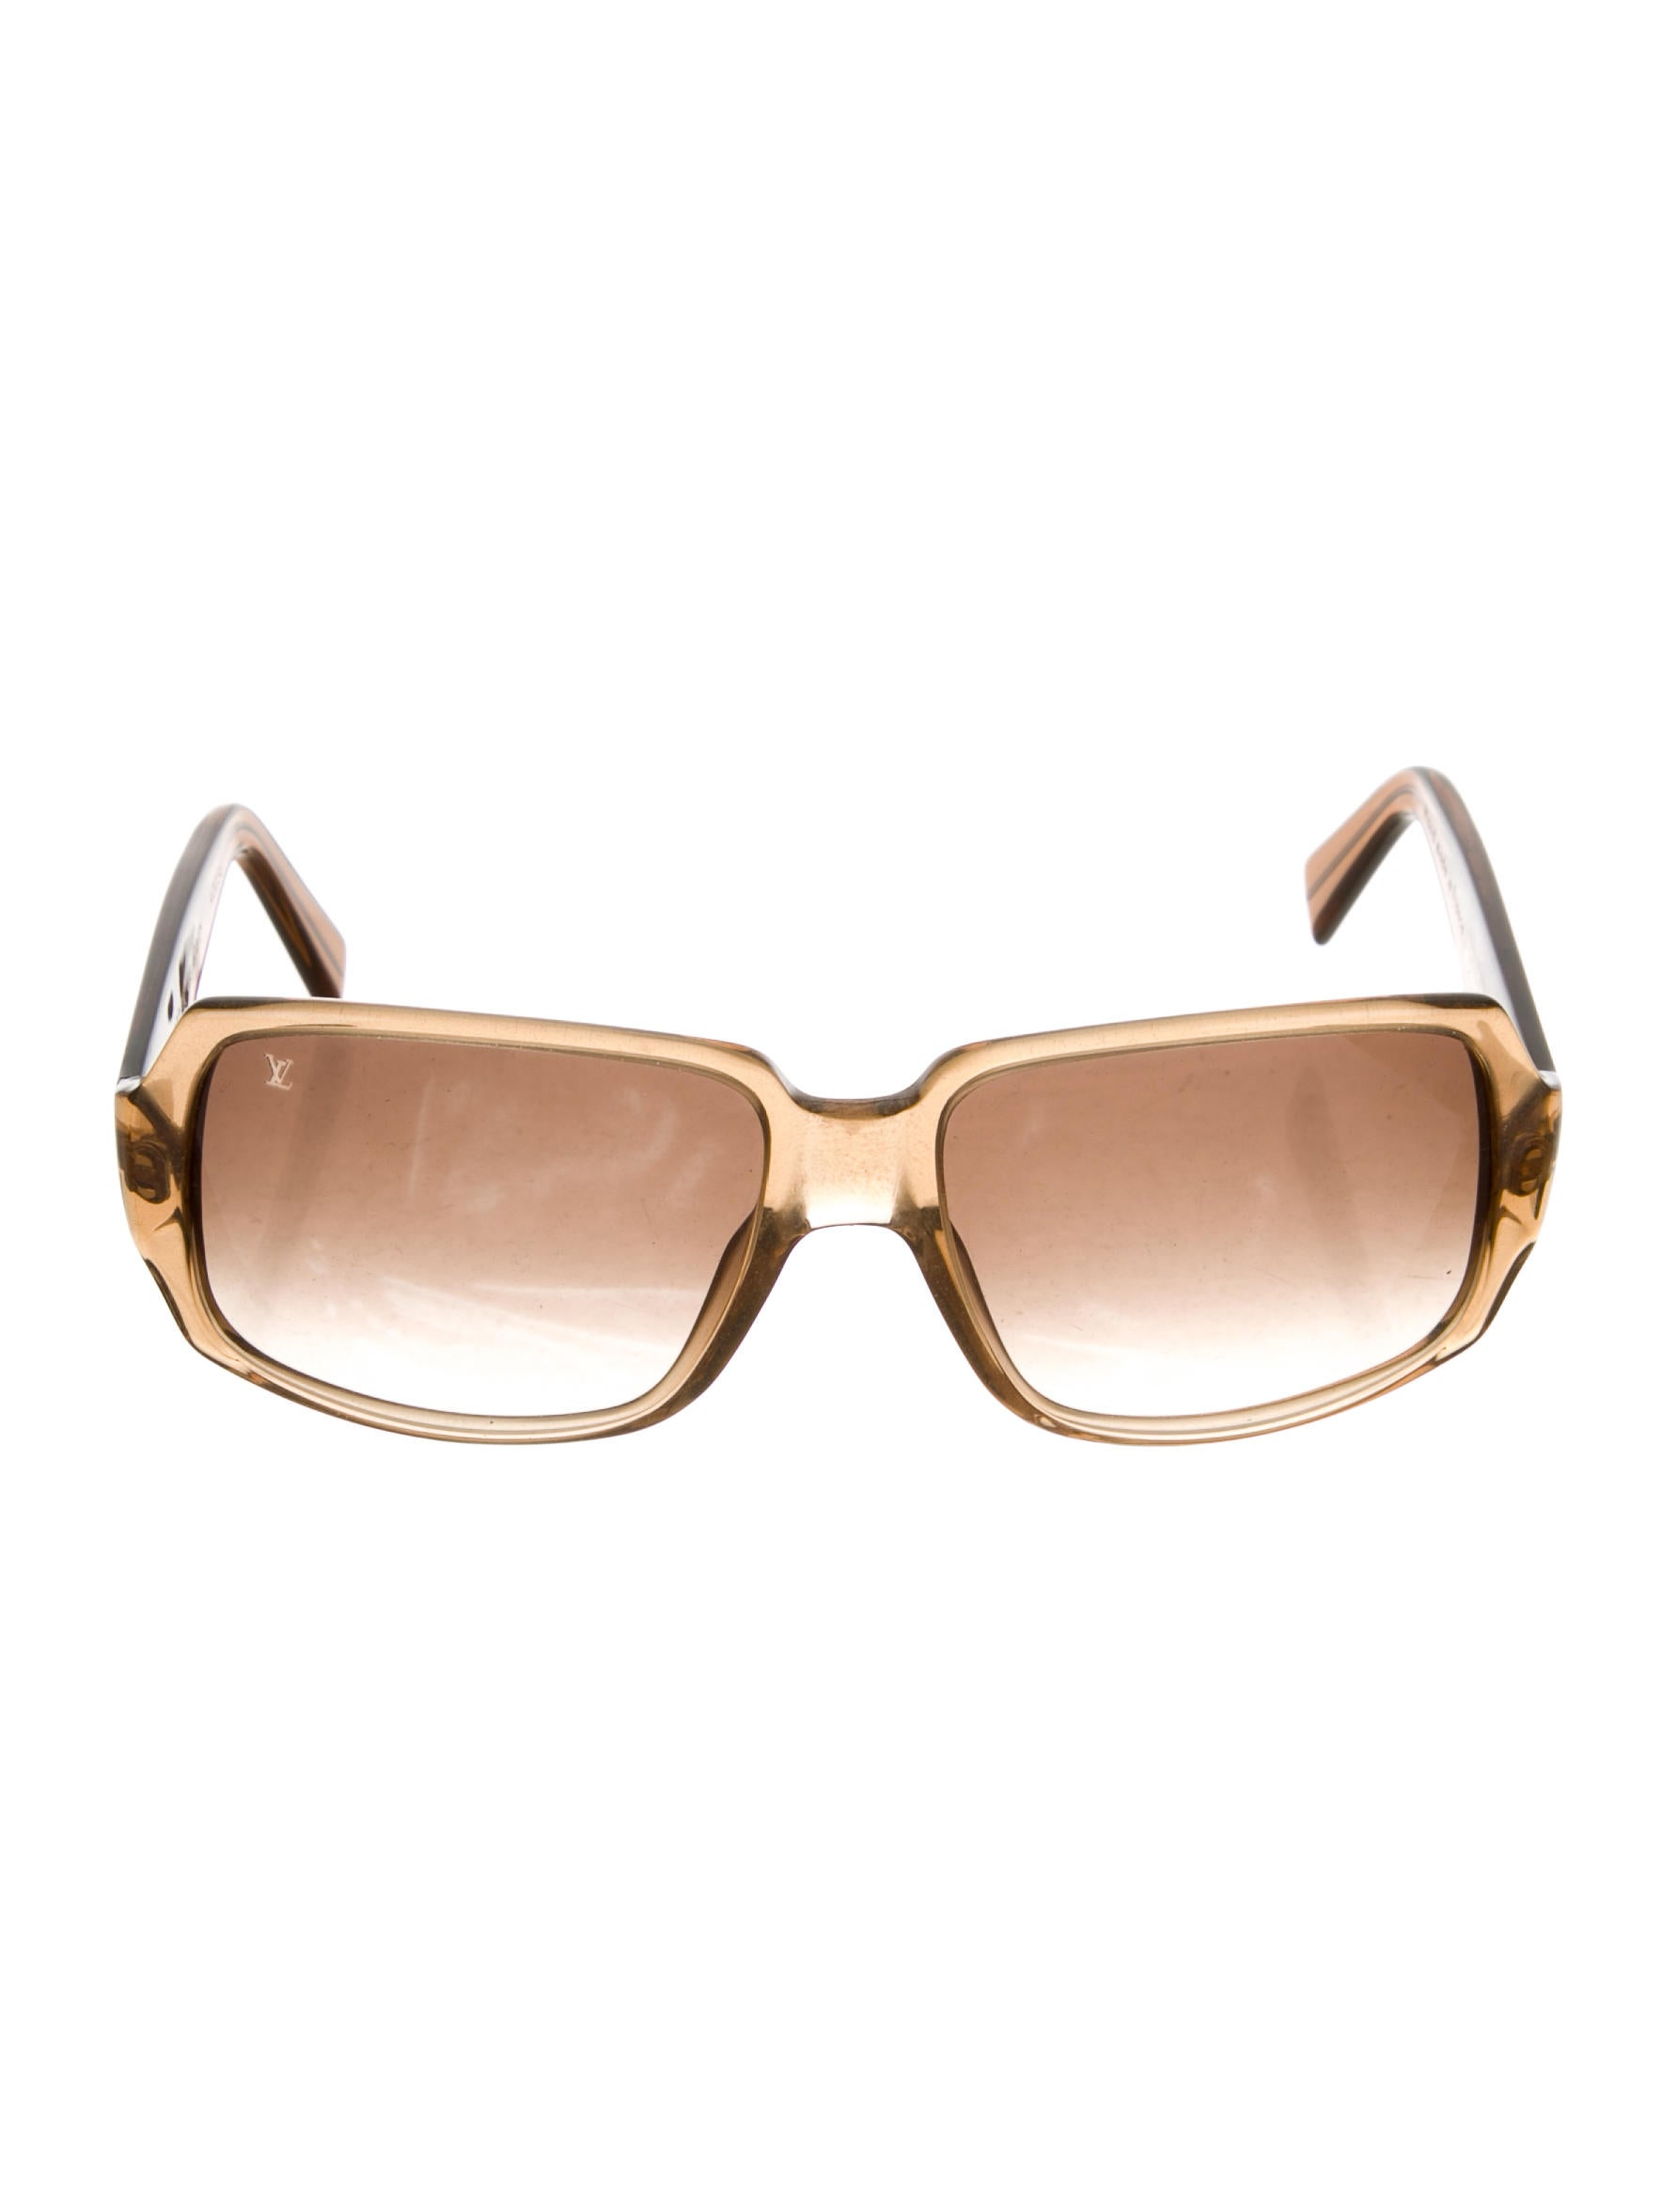 9ad730aa996 Louis Vuitton Obsession Carré Sunglasses - Accessories - LOU161355 ...